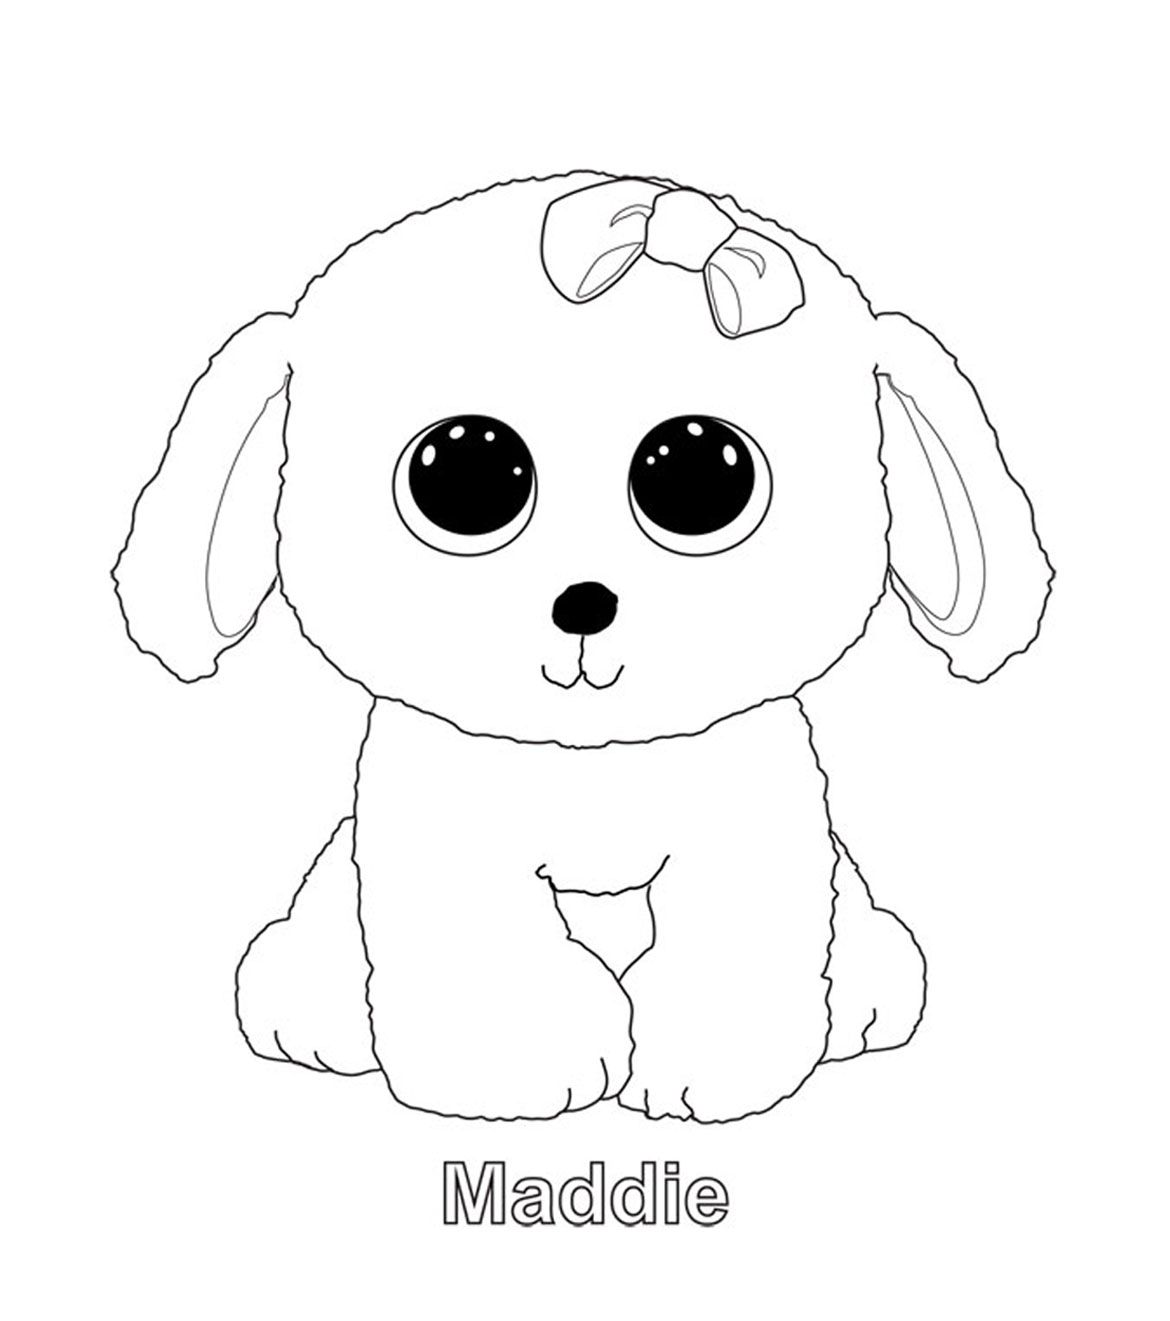 boo boo coloring pages - photo#26